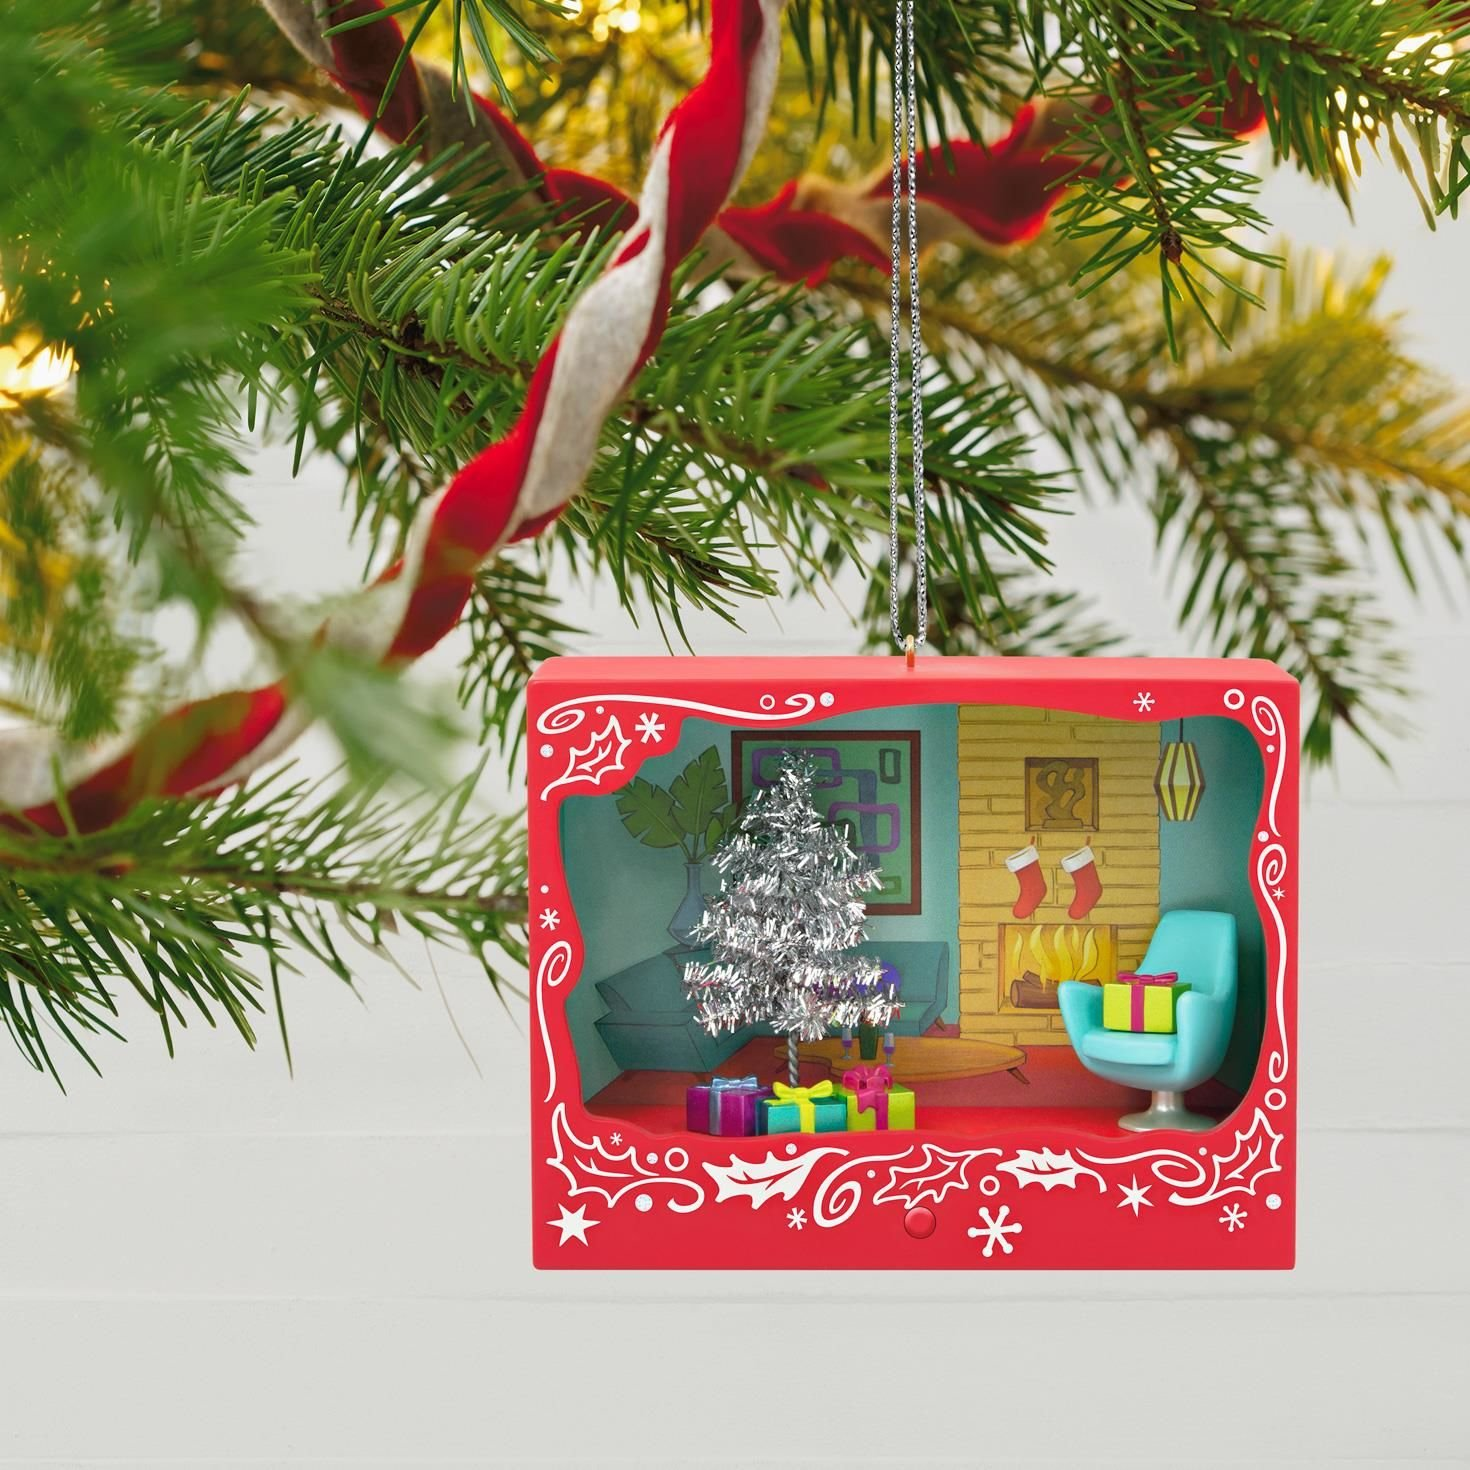 Amazon.com: Tinseltime Christmas Ornament With Light: Home & Kitchen